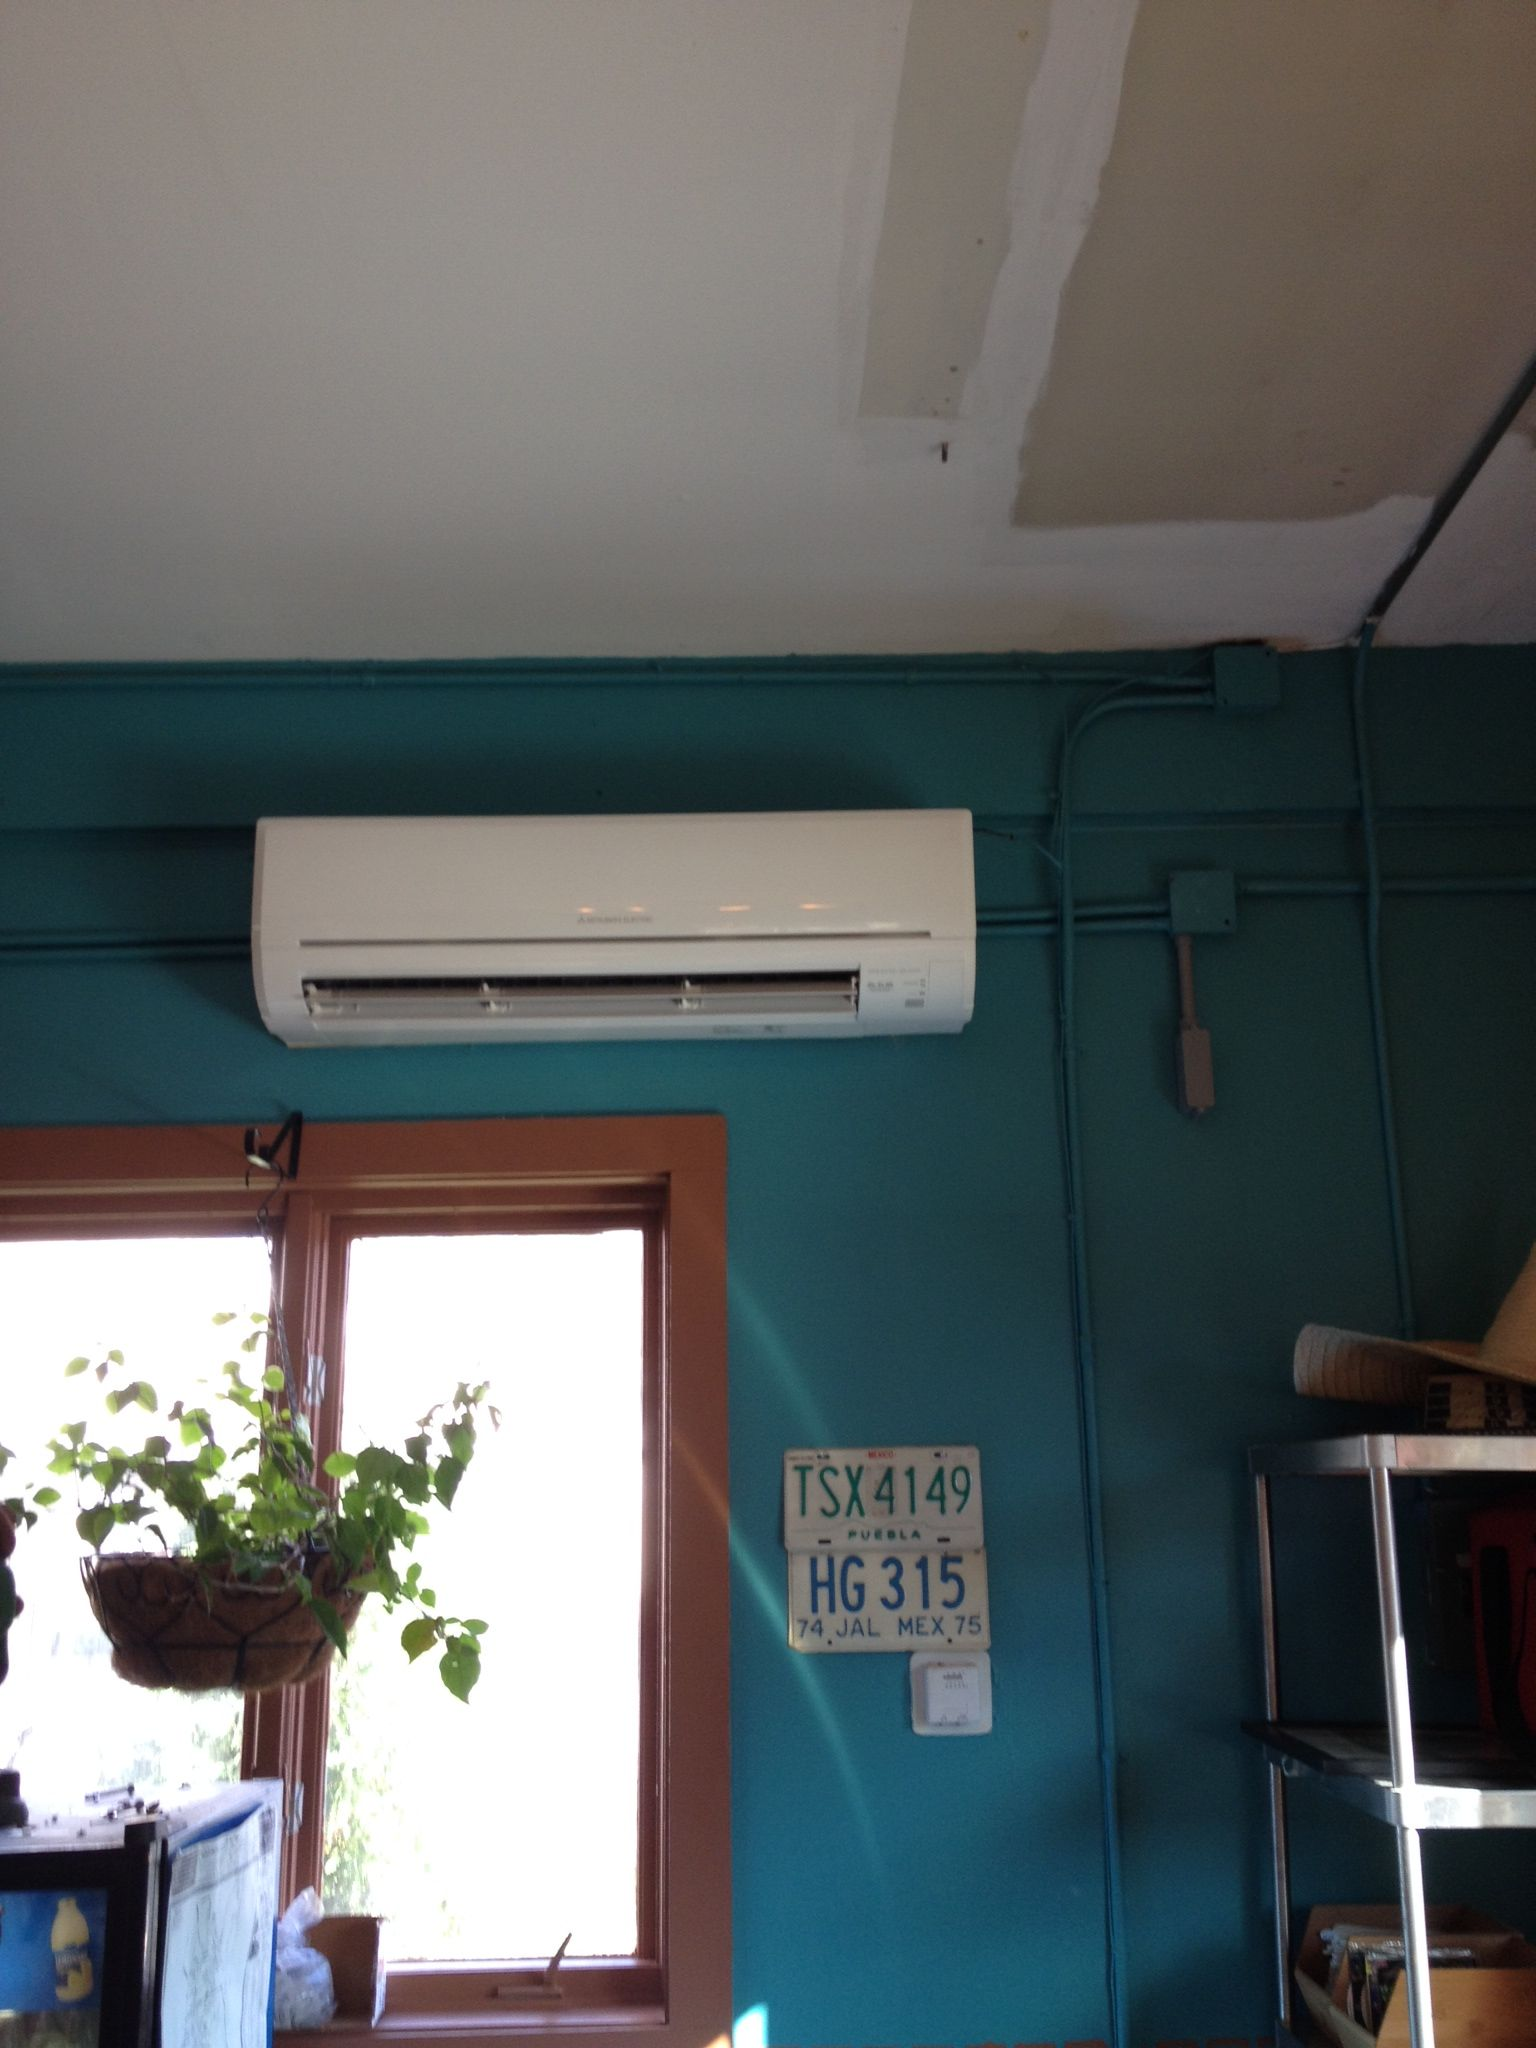 Mitsubishi Ductless Split wall unit. (With images) Wall